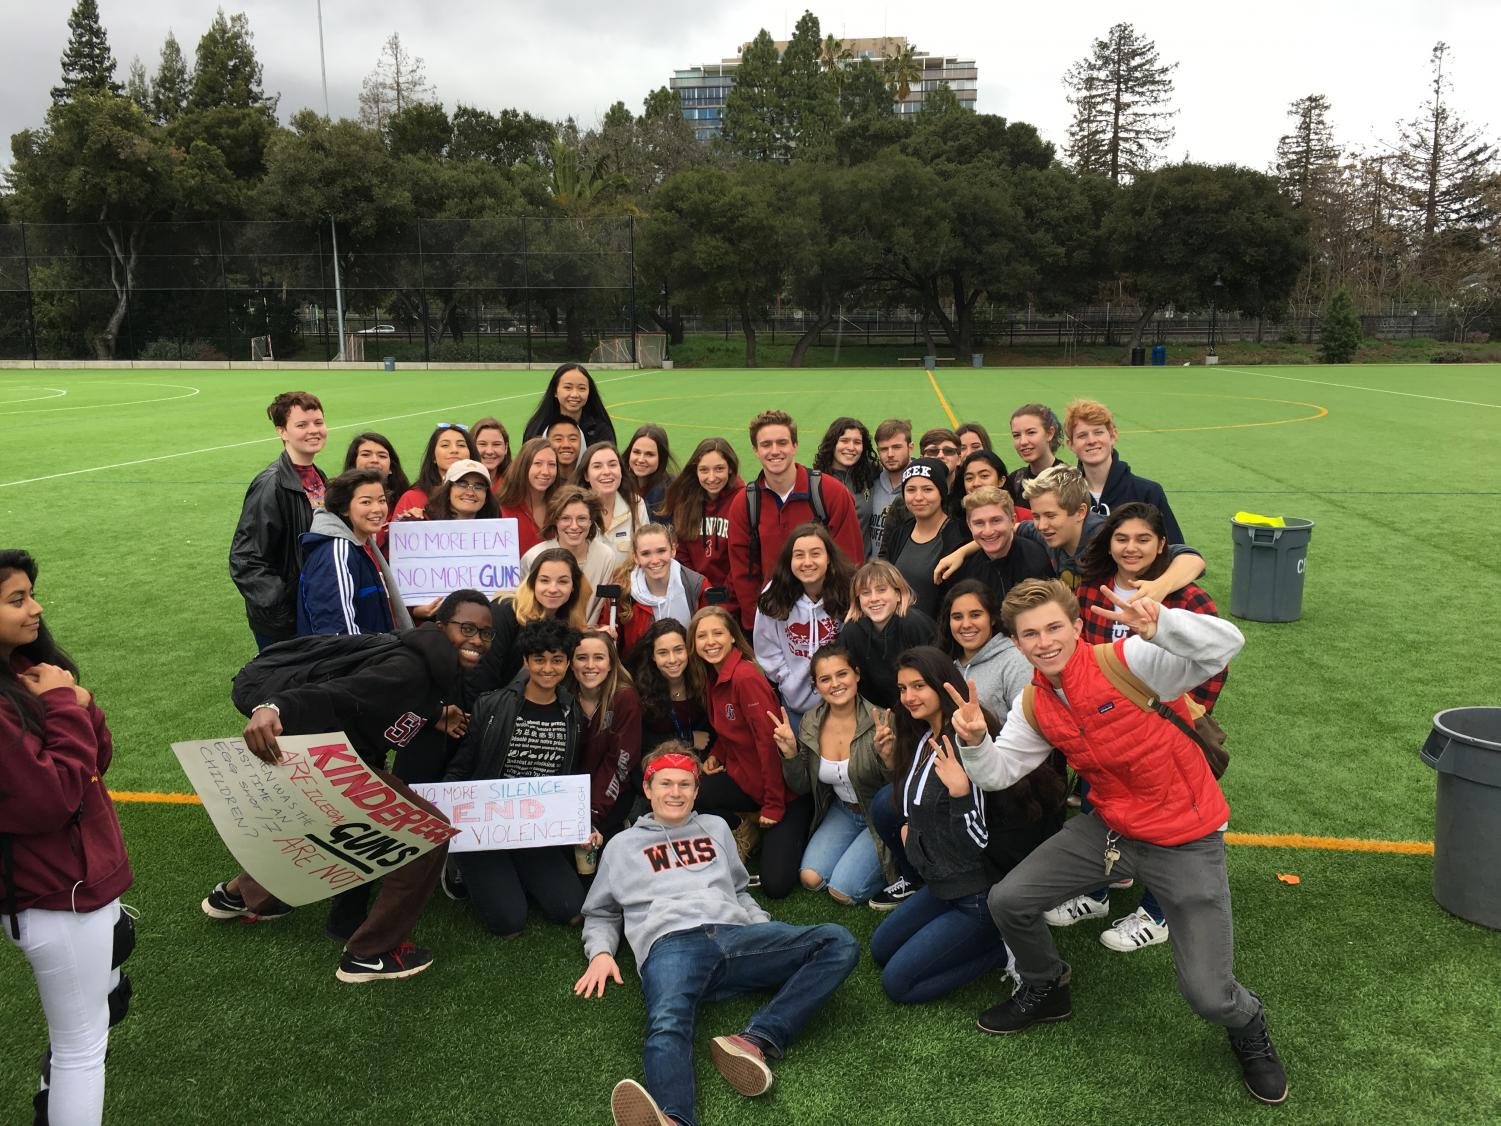 Woodside Students gather for a photo at the Walkout.